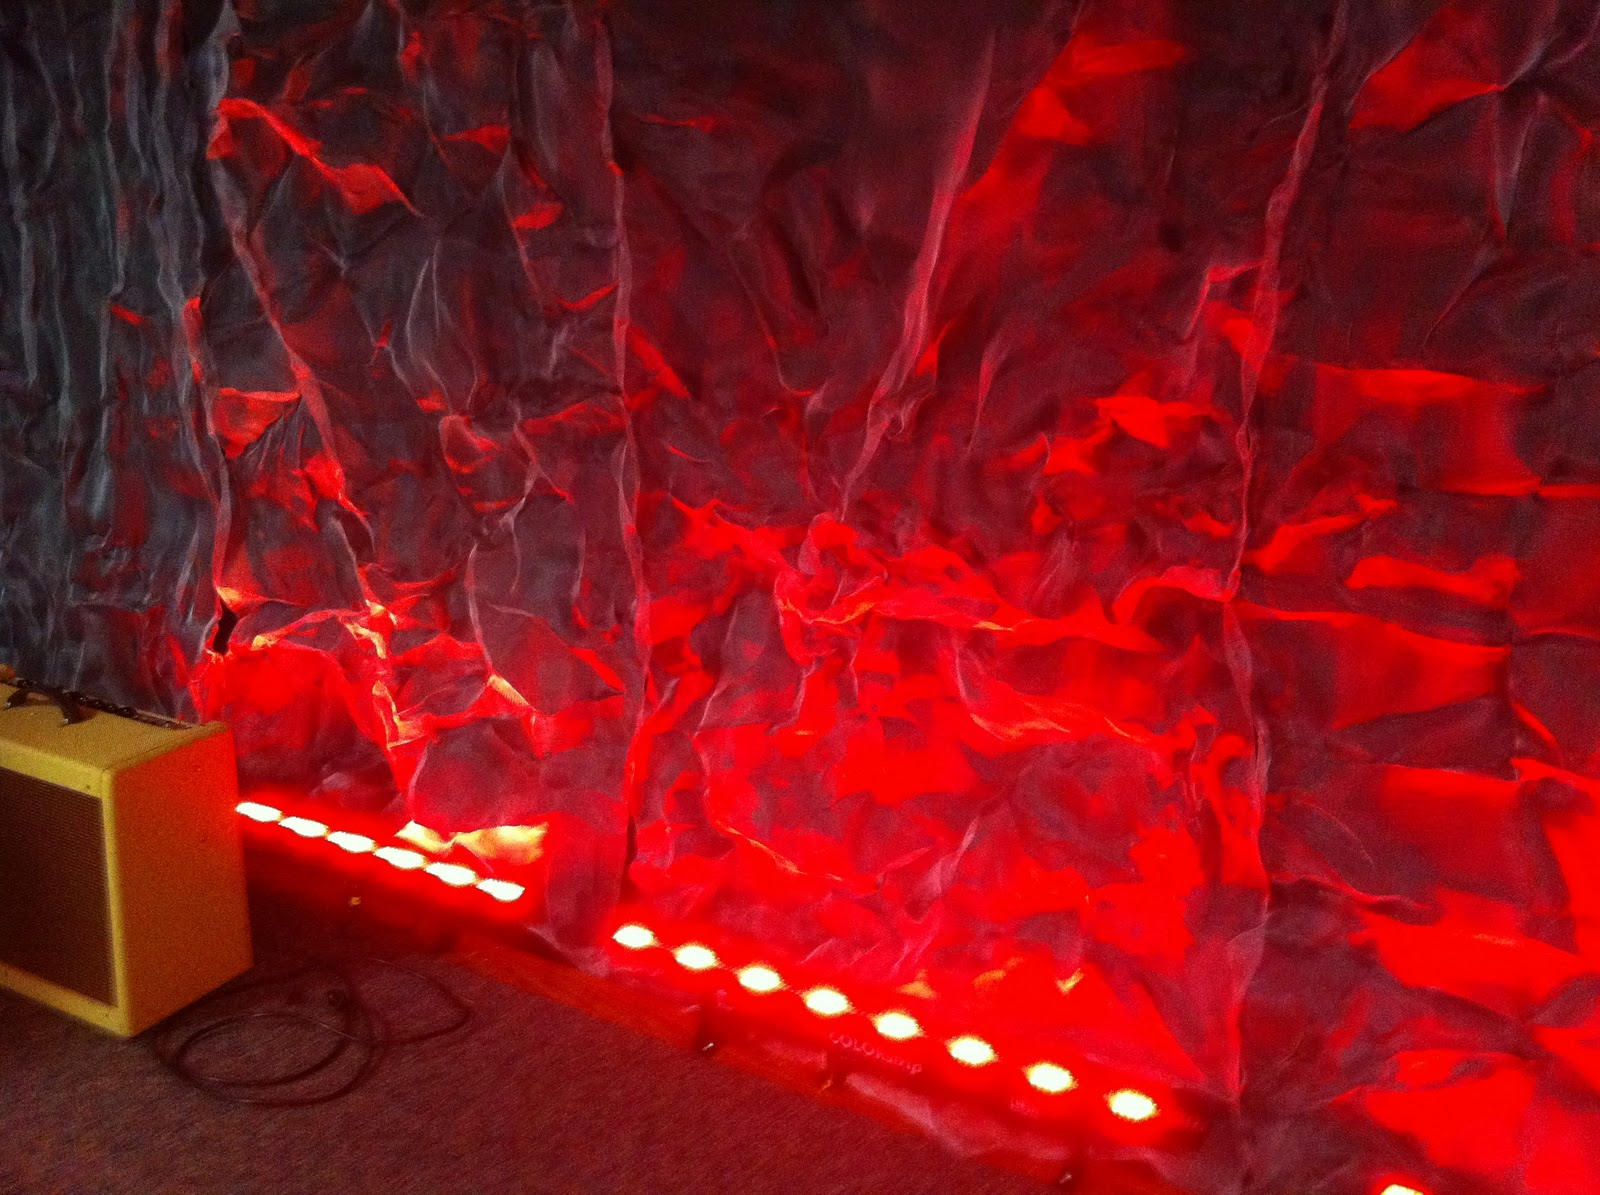 Church Stage Design Ideas For Cheap ped xing Stage Design Idea Crunched Screen Lighting Texture